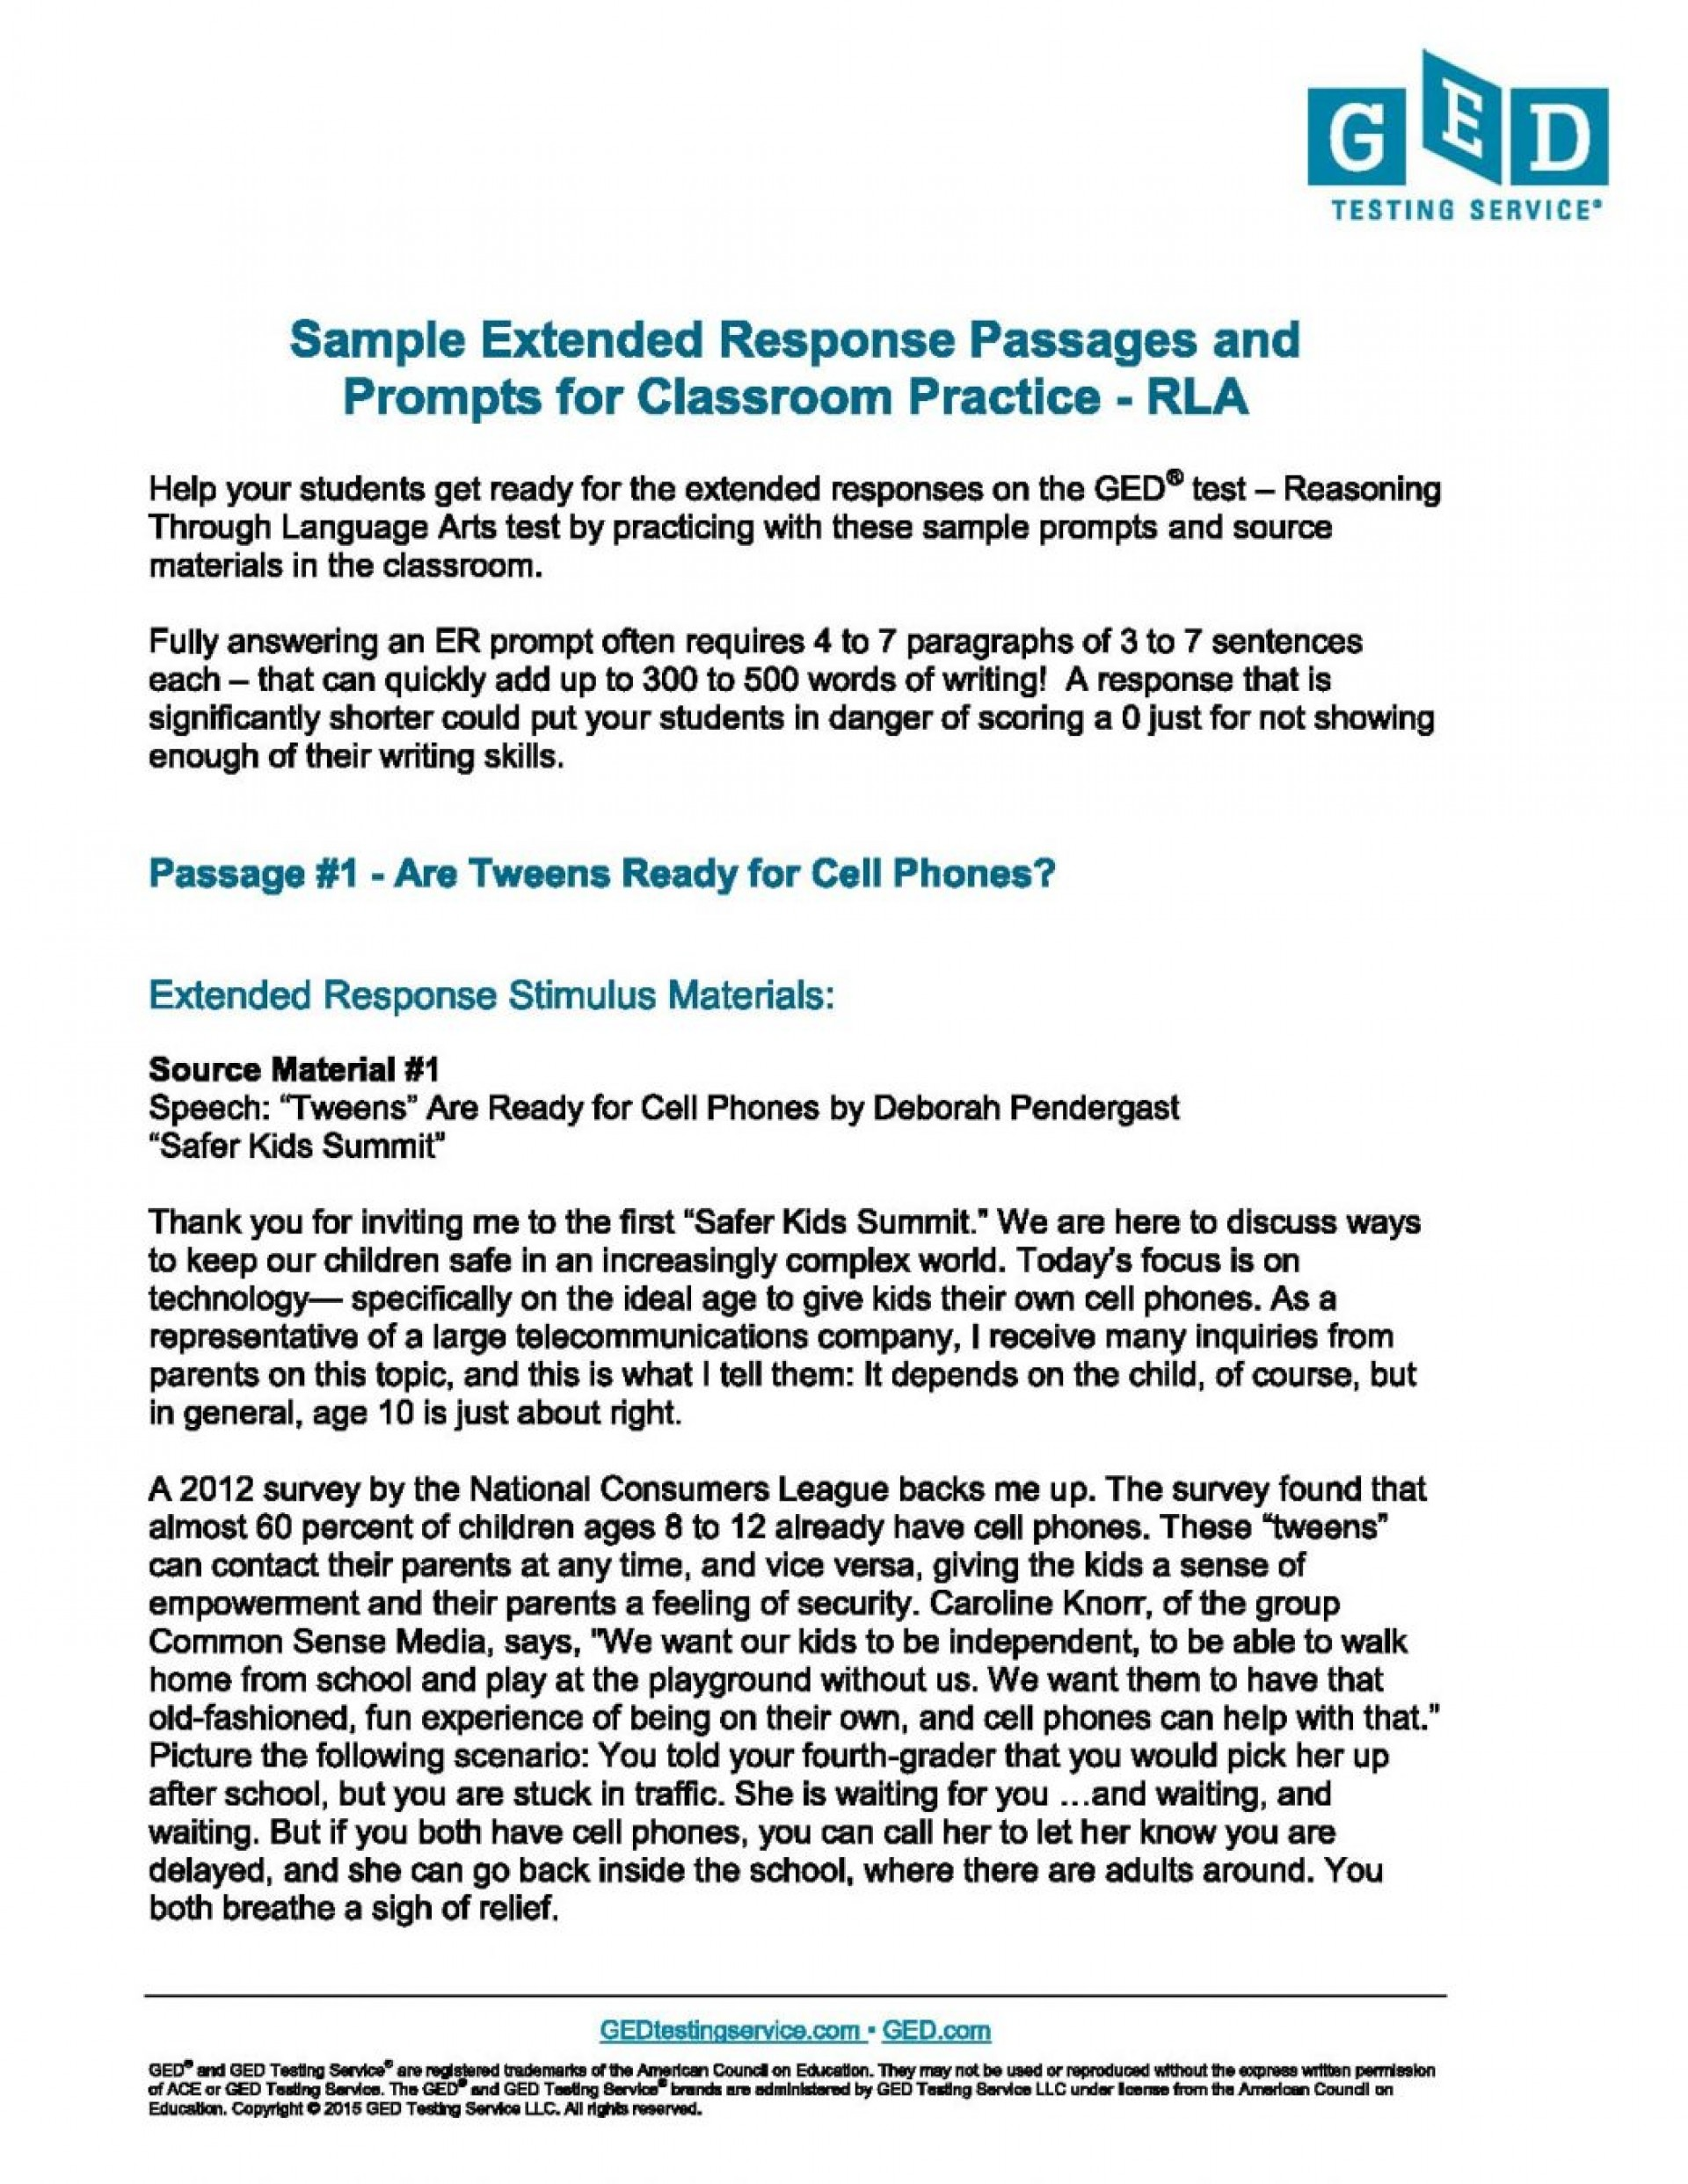 011 Sample Gedys With Scoresy Writing Prompt Good Resume Example Topics Prompts For Classroom Practic Tips Youtube Samples In Spanish Lesson Plans Template Rubric Examples 1048x1356 Rare Ged Essays Scores Pdf 1920